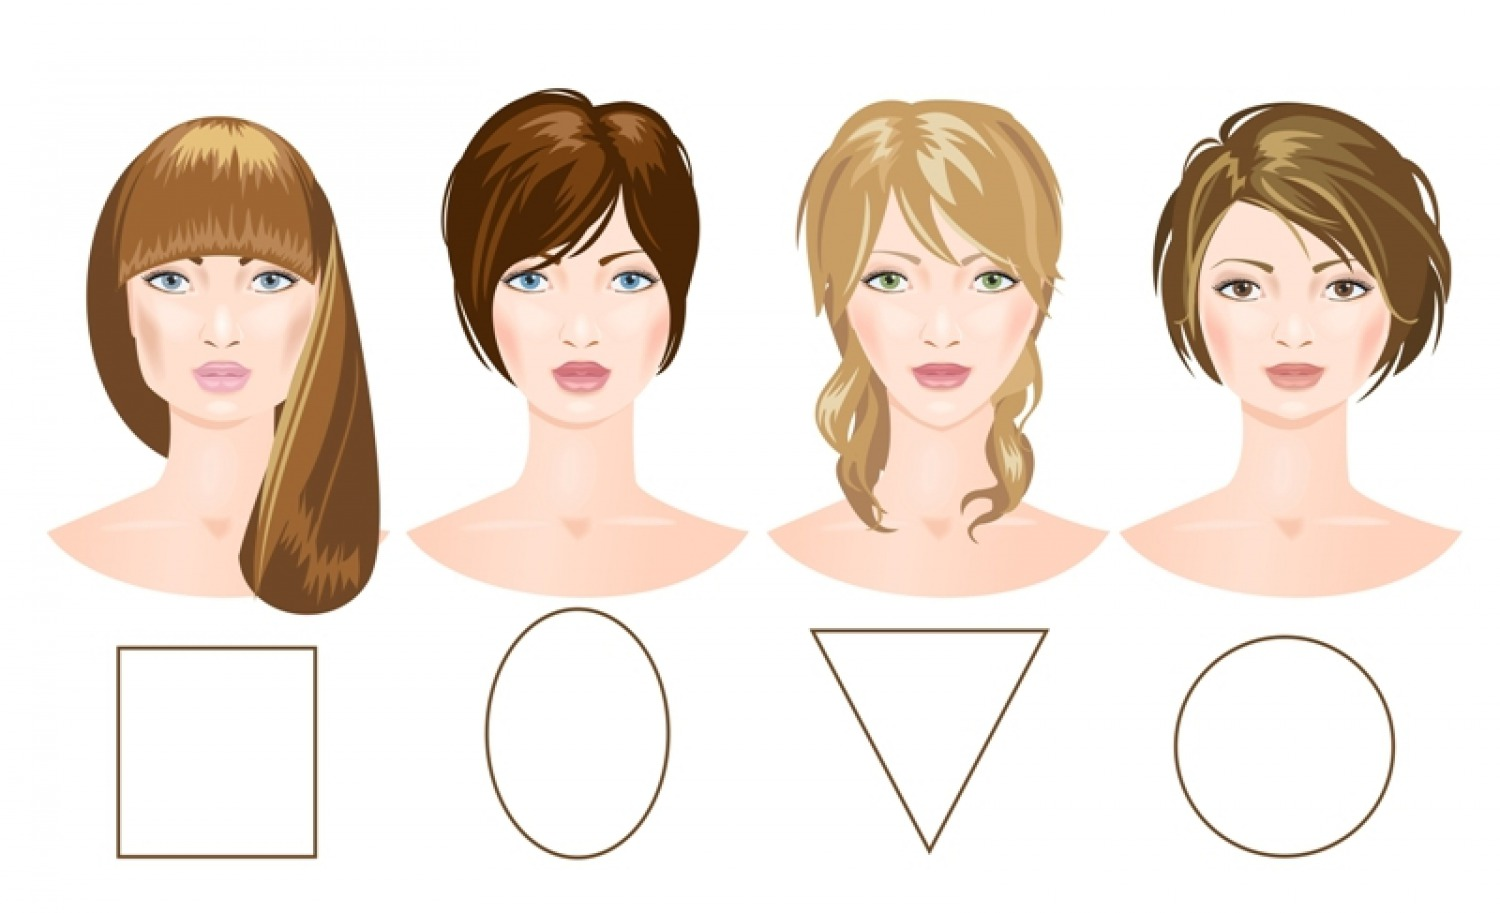 Hairstyles To Suit Different Face Shapes Part 2- Round And